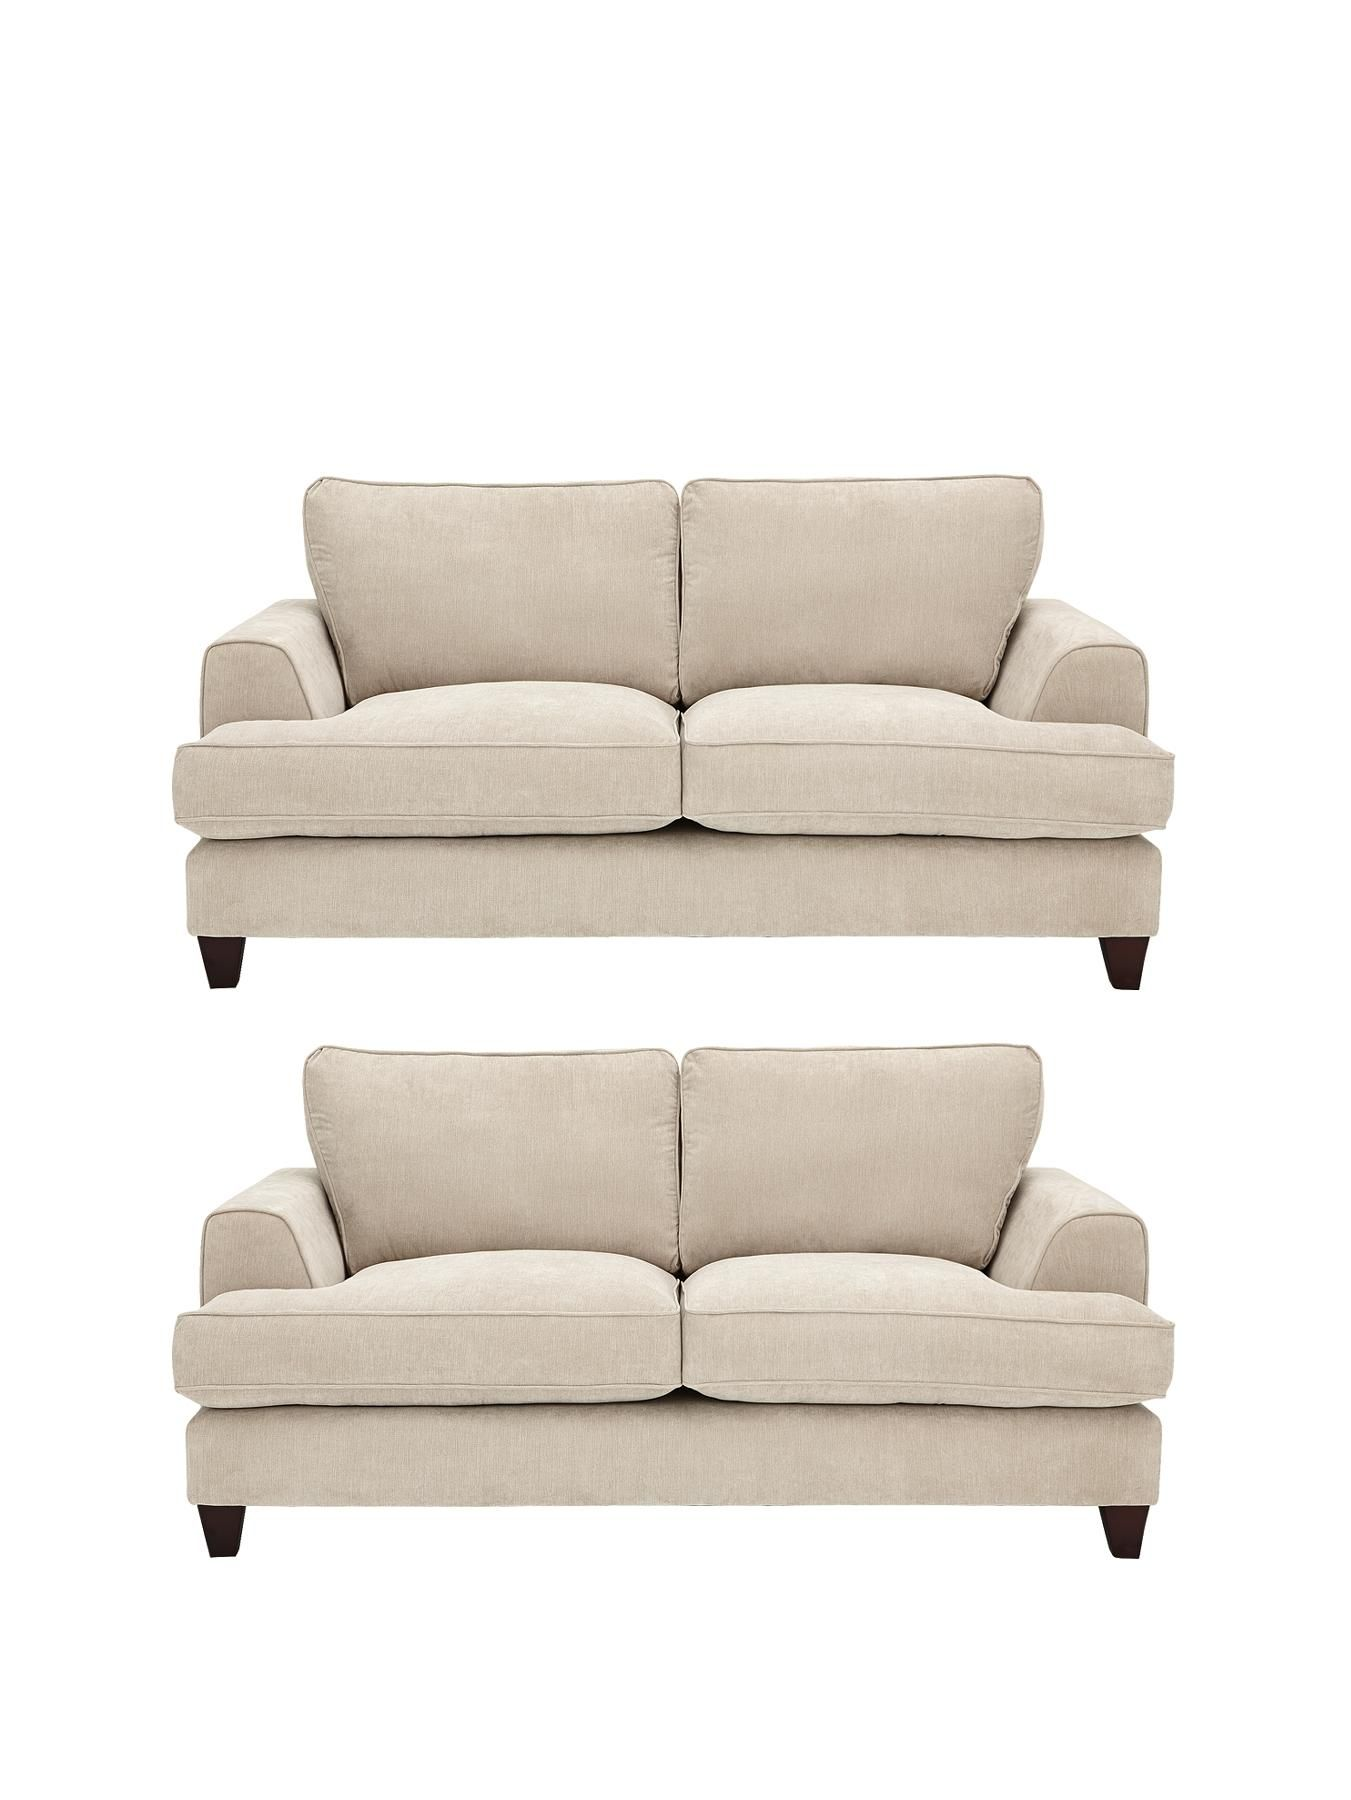 Camden 2-Seater + 2-Seater Fabric Sofa Set (Buy and SAVE!) | very.co.uk